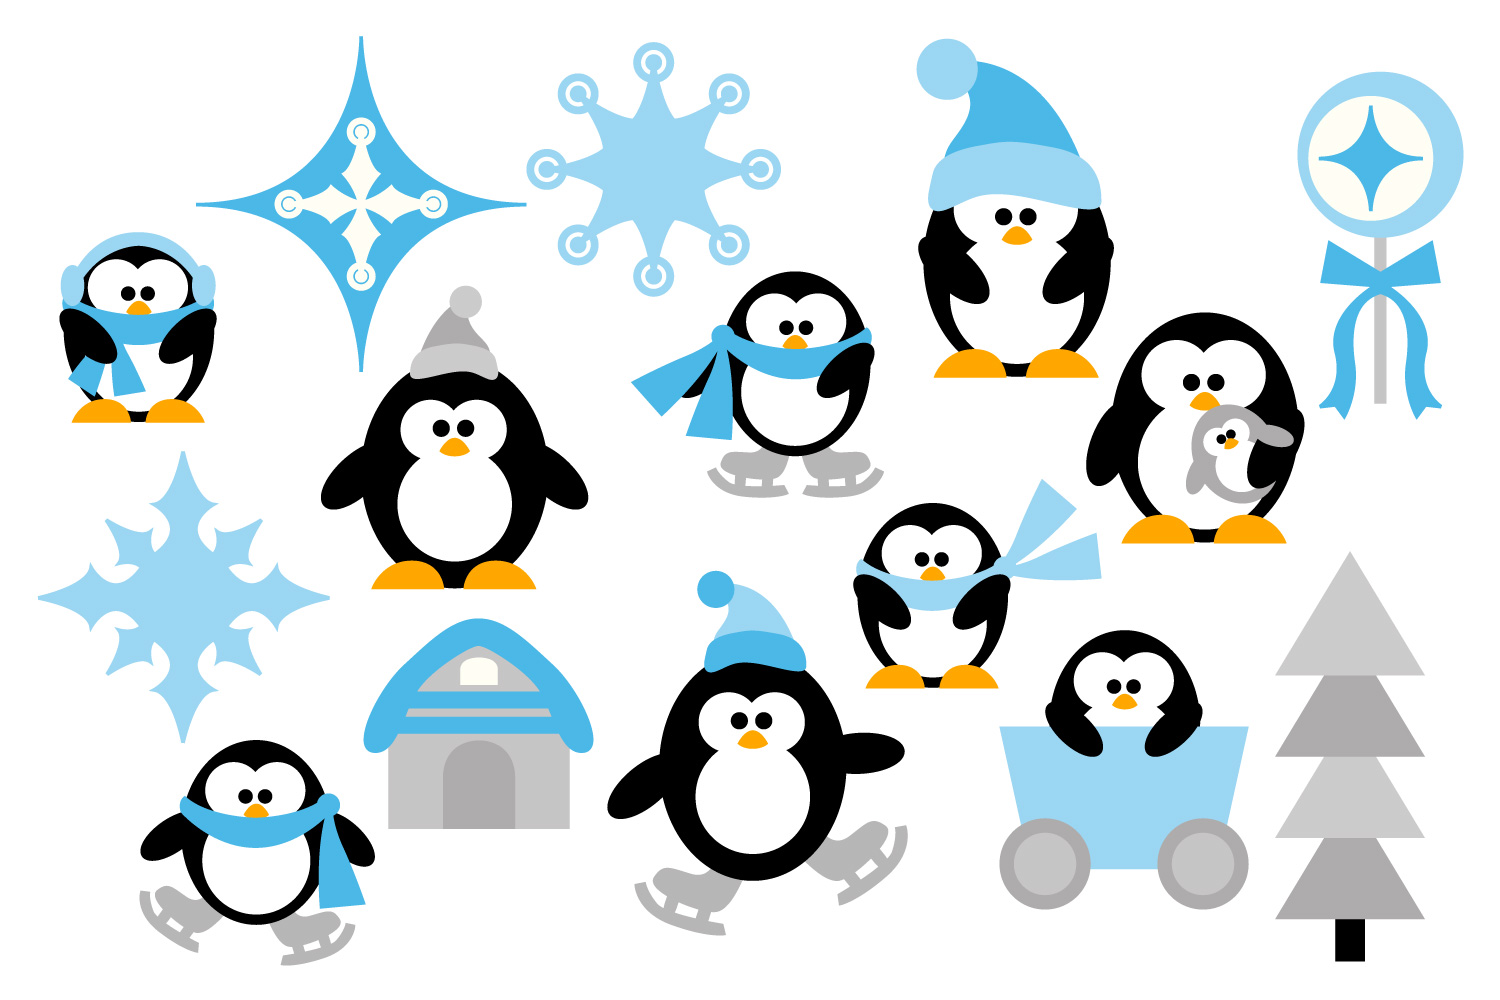 penguins clipart winter wonderland gra design bundles rh designbundles net christmas winter wonderland clipart winter wonderland clip art borders